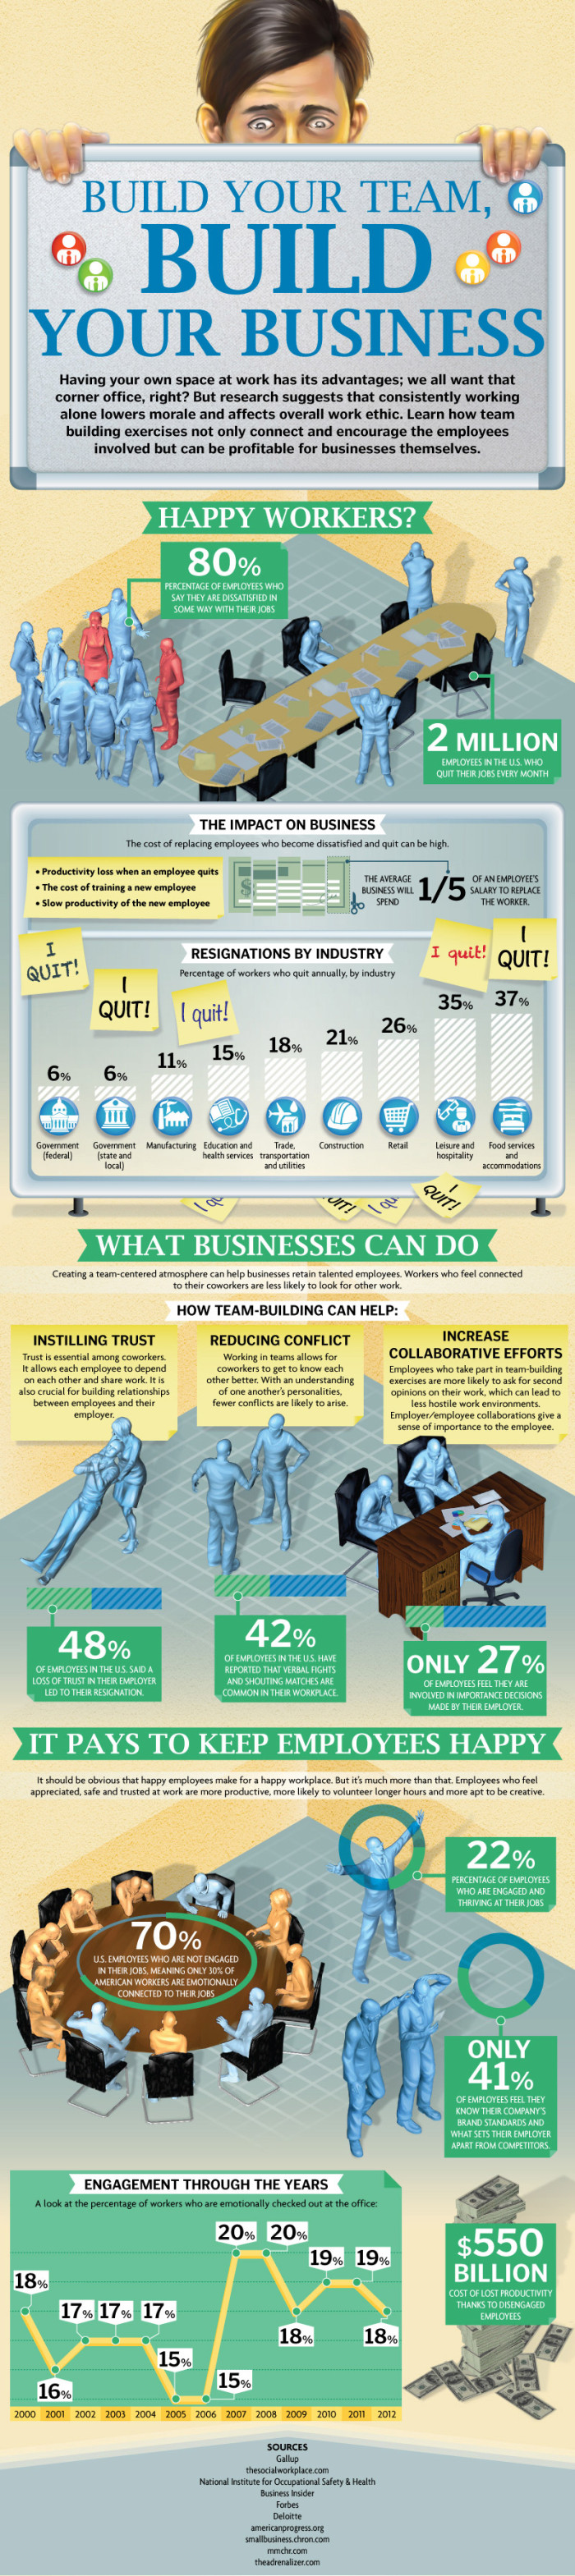 SabrinaZolkifi_Aug2013_workplace-unhappiness-infographic